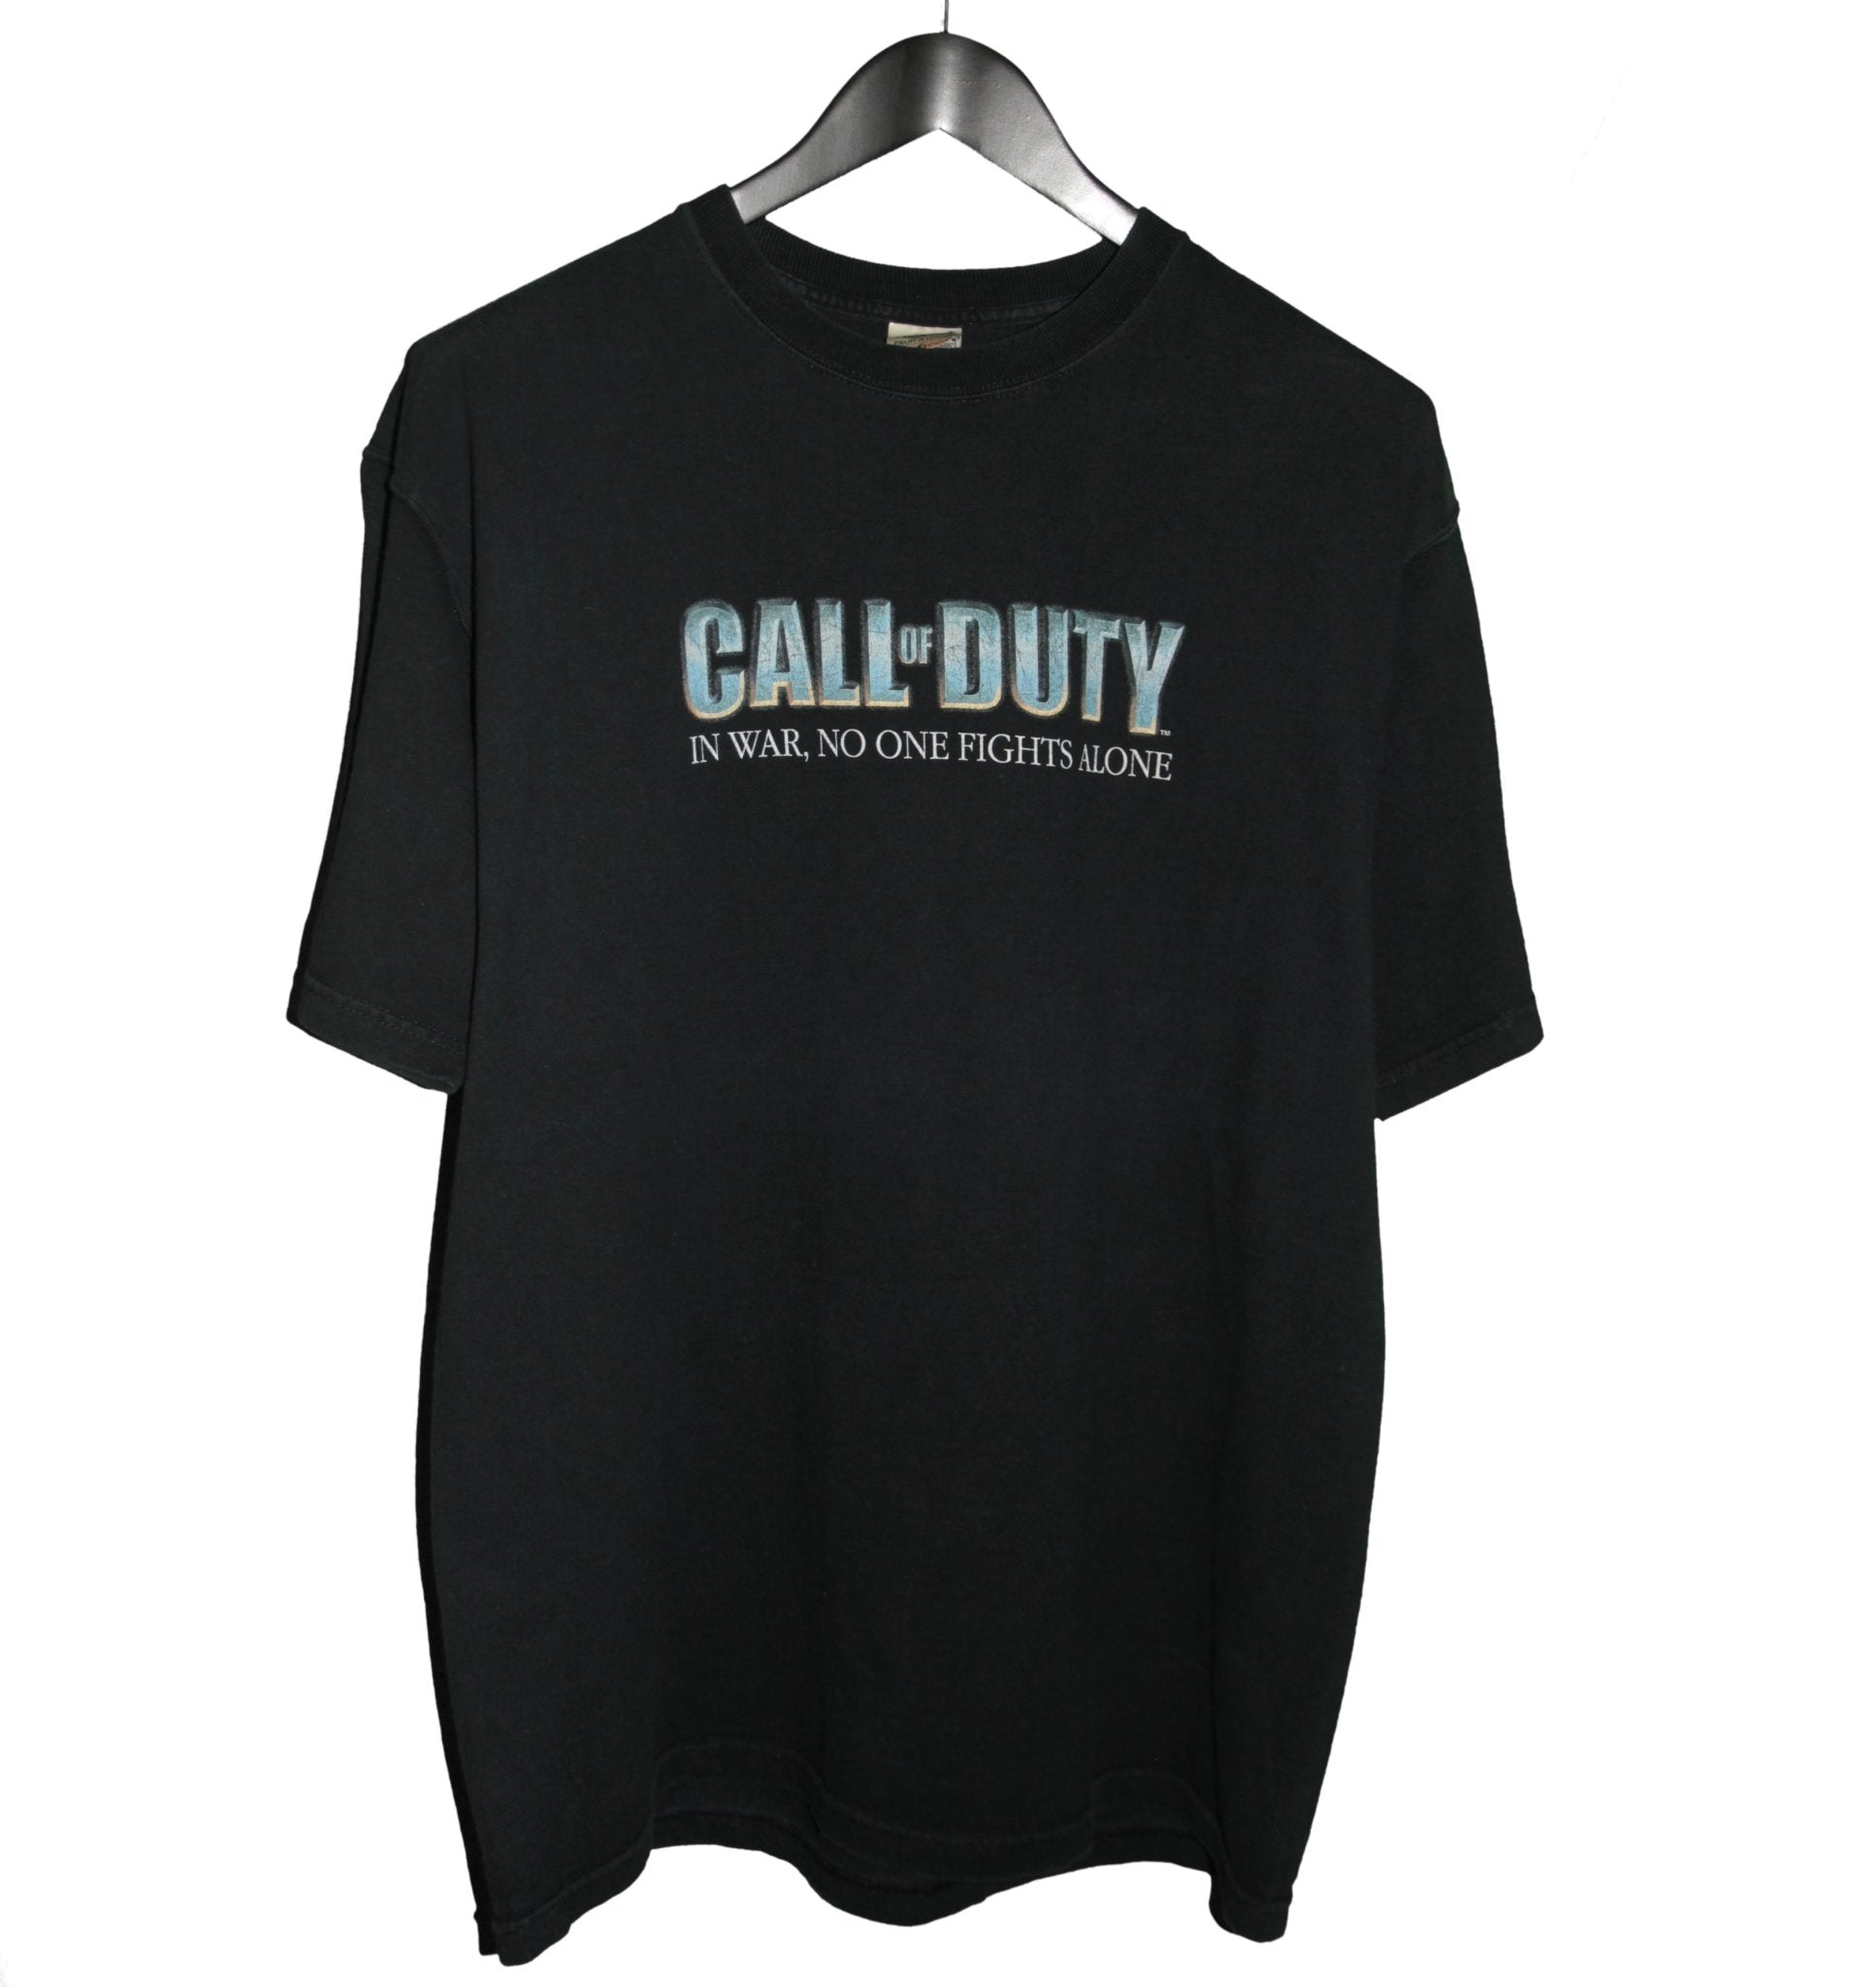 Call of Duty 2003 Promo Video Game Shirt - Faded AU